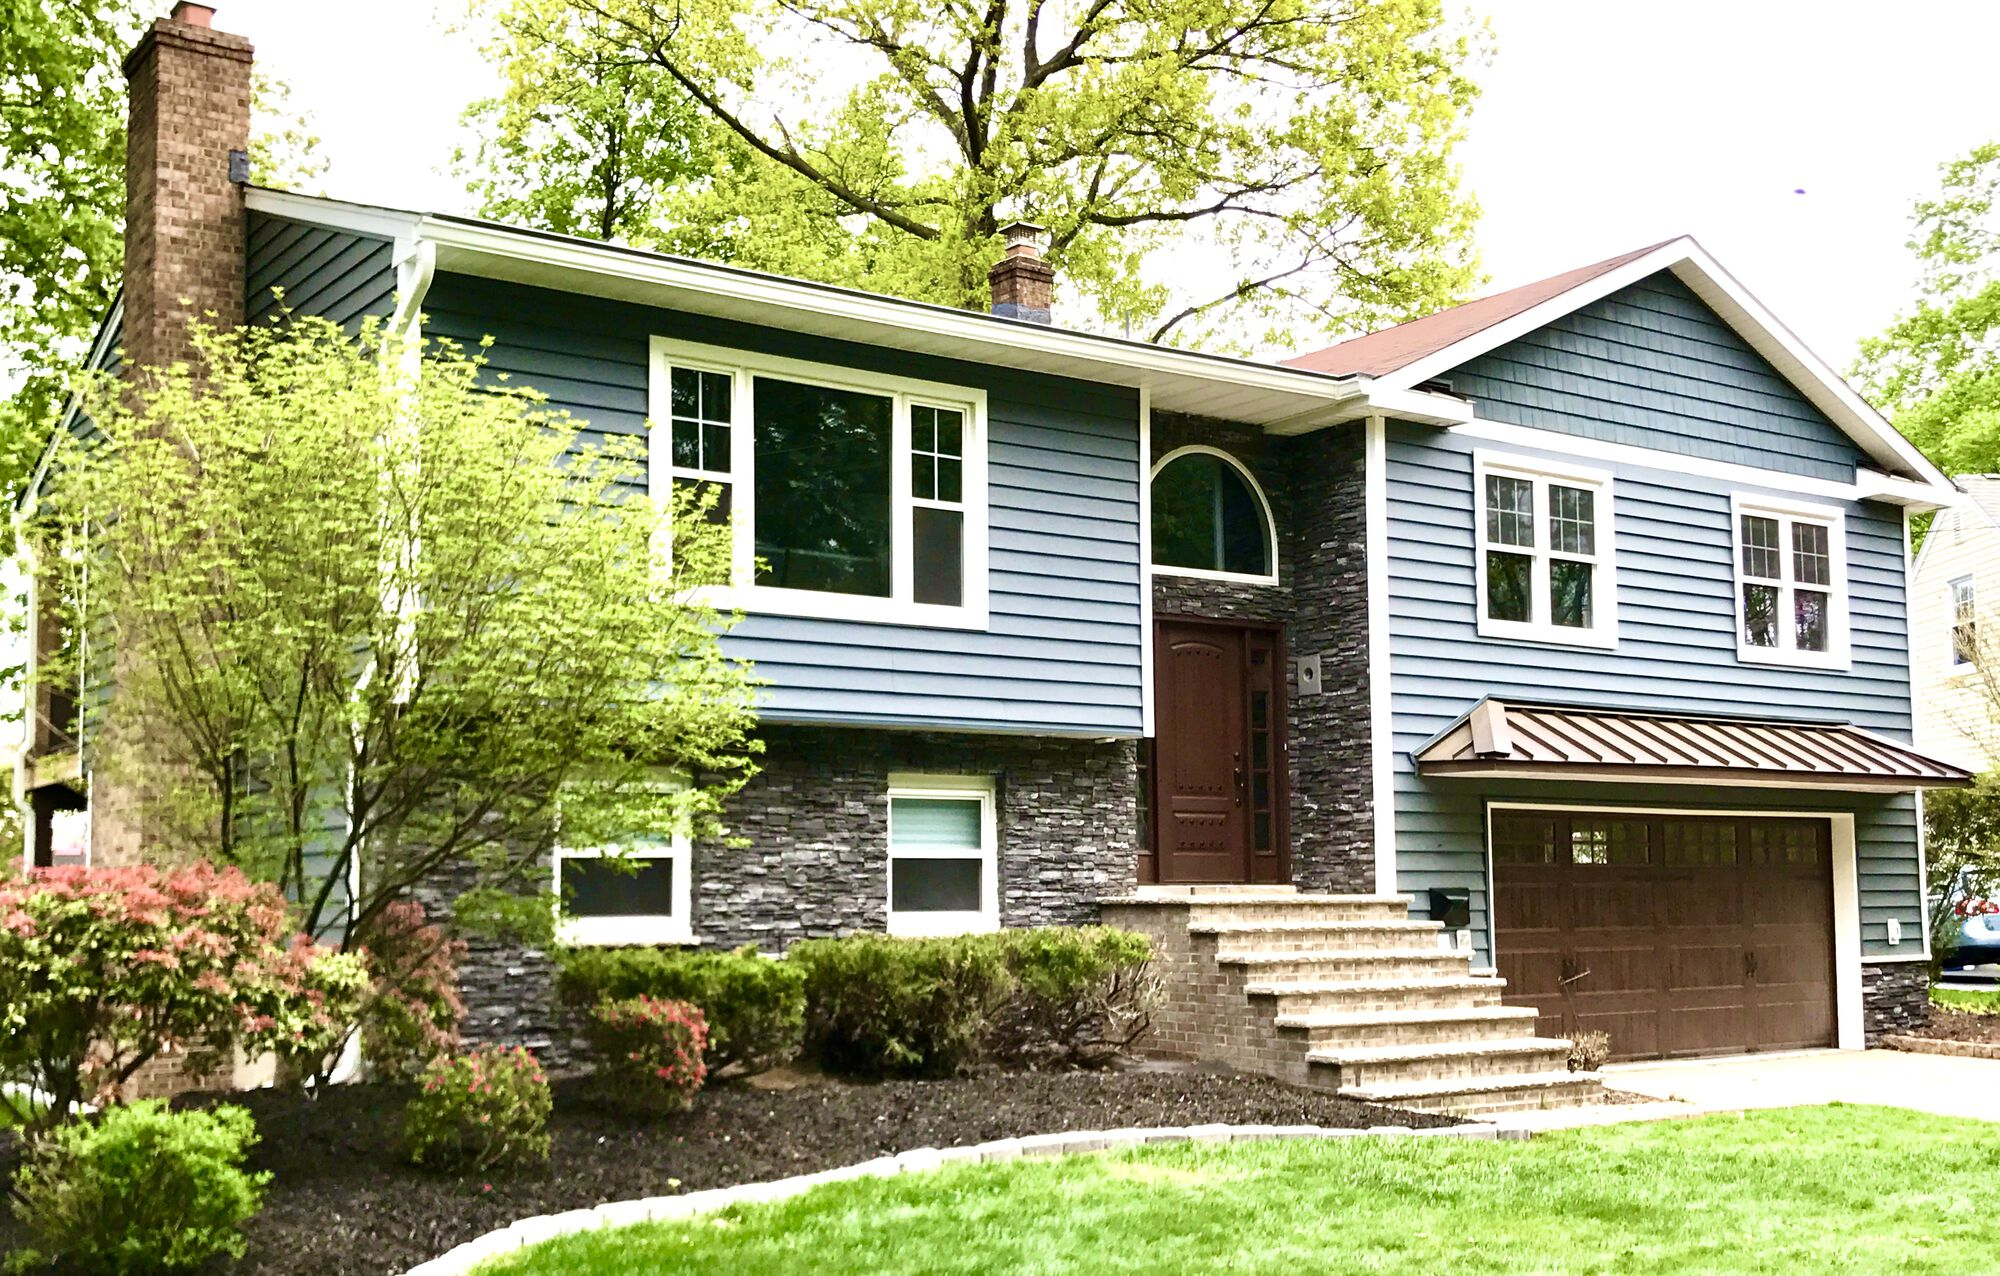 Alside Prodigy Insulated Solid Backed Siding, Boral Cultured Stone, Metal Roof in Morristown, Morris County NJ